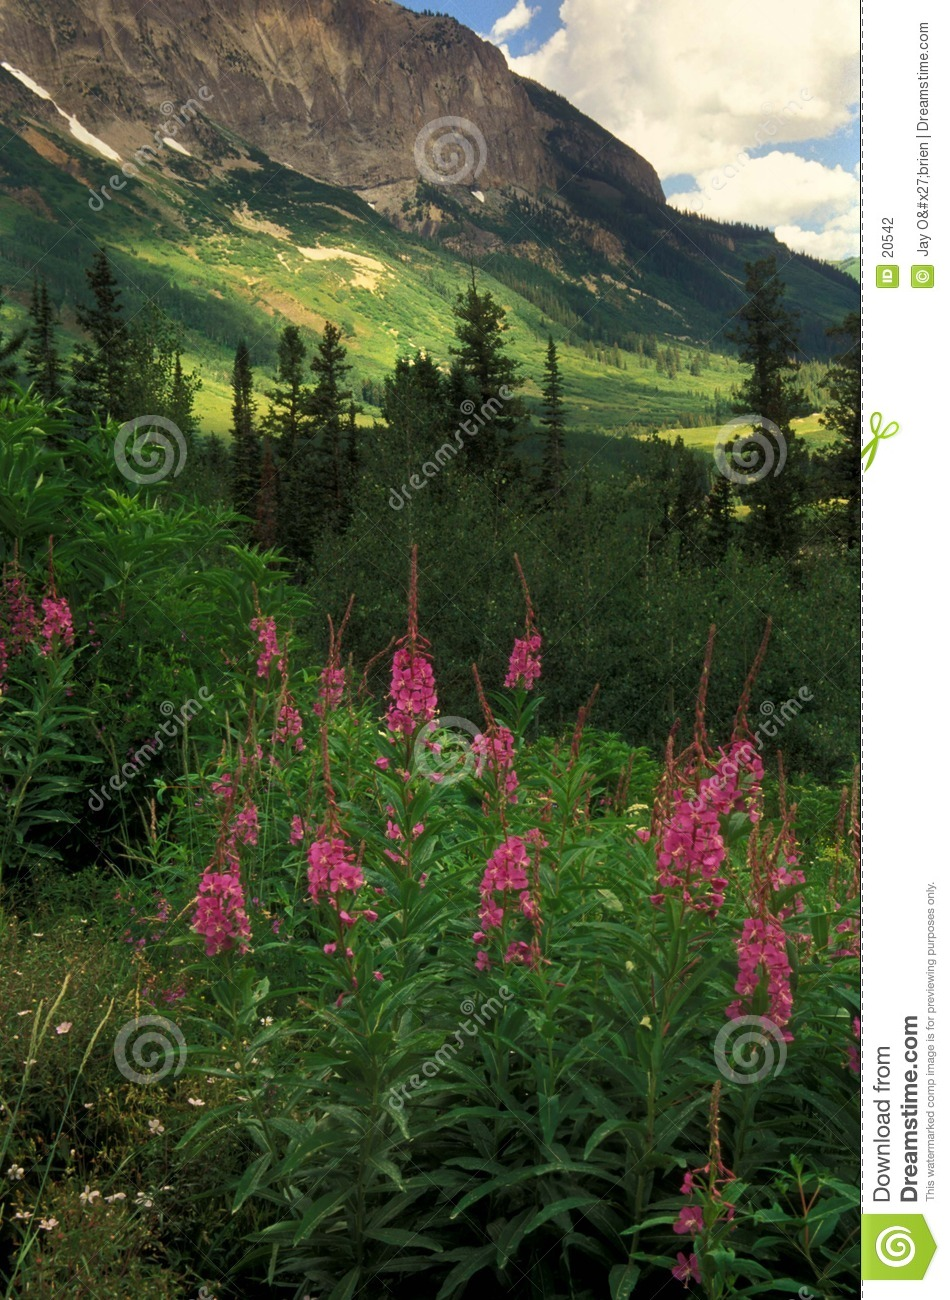 Fireweed & montagna